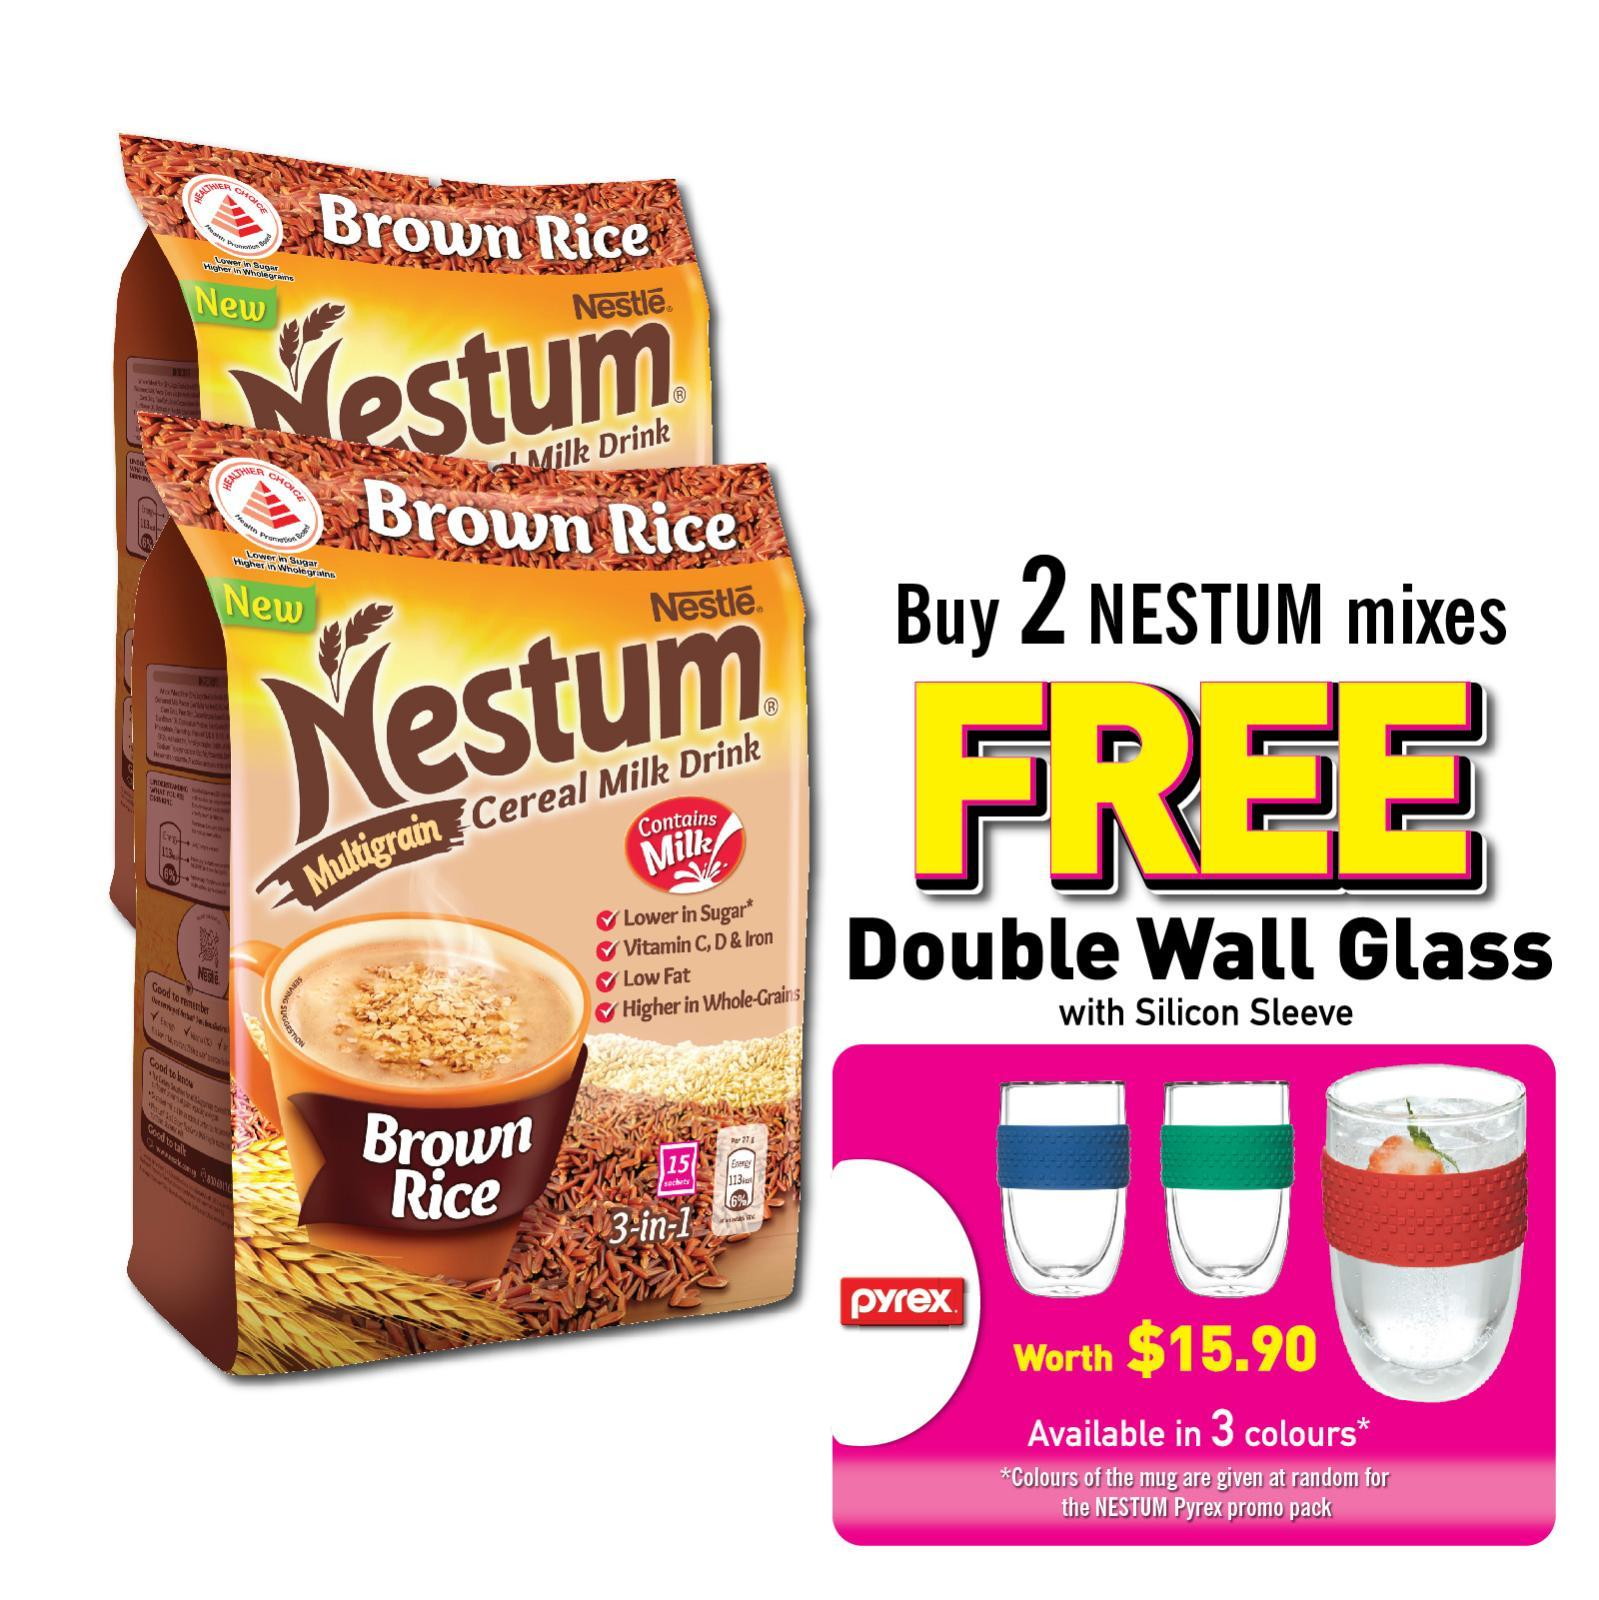 Nestum 3in1 Cereal Drink Brown Rice (2 Packs + Free Pyrex Double Wall Glass) By Redmart.